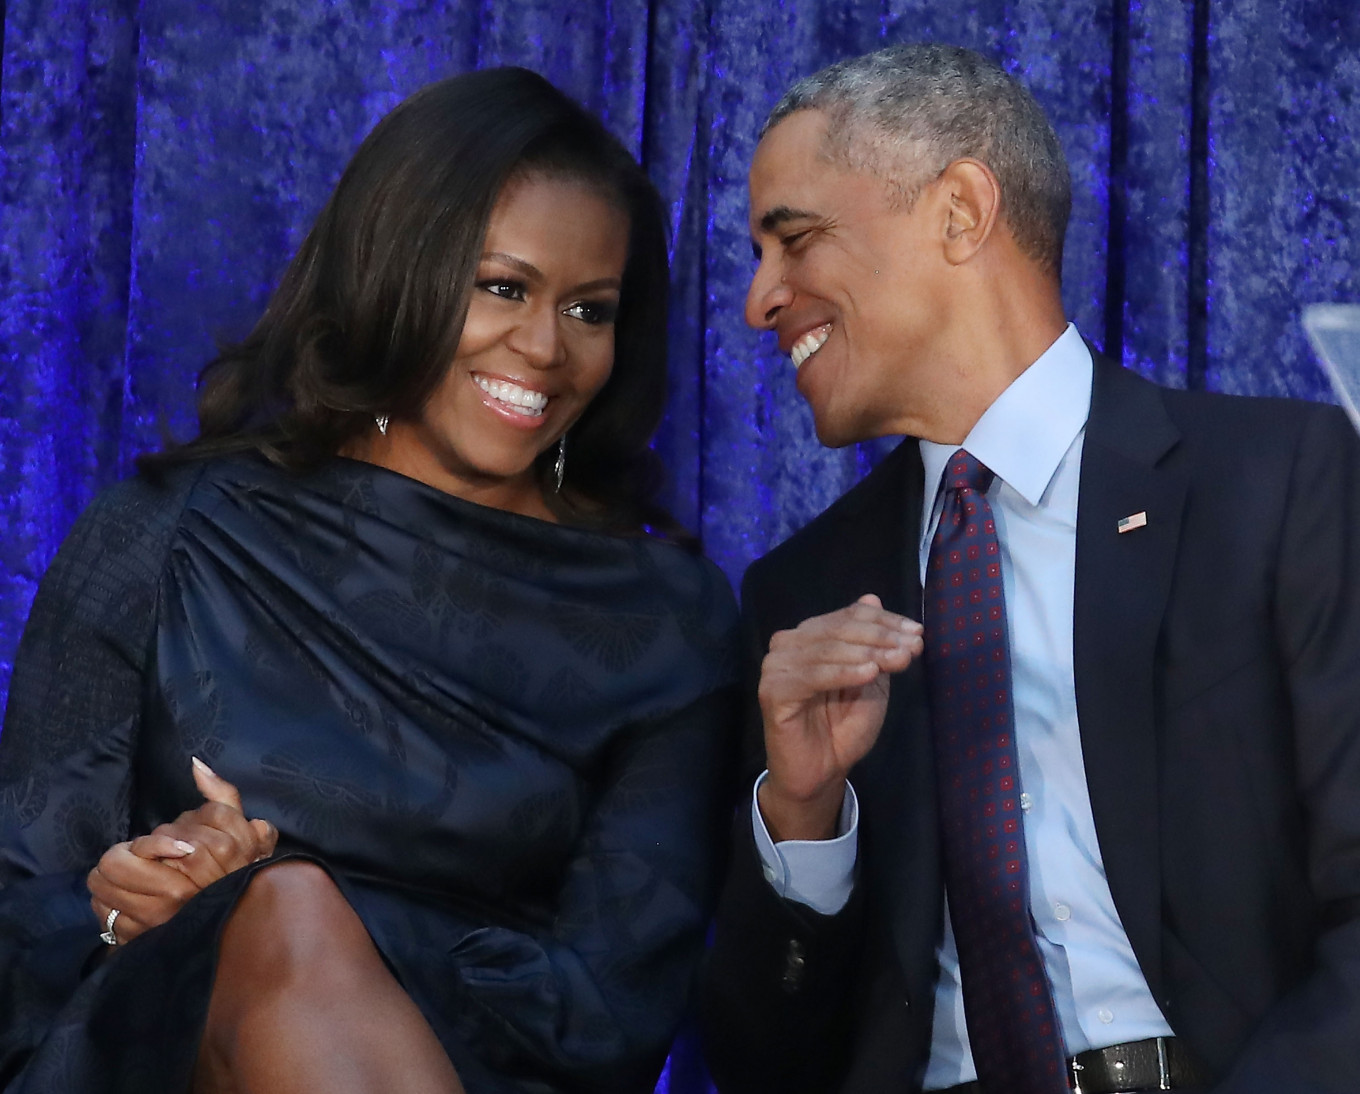 Obamas' production company will make podcasts for Spotify